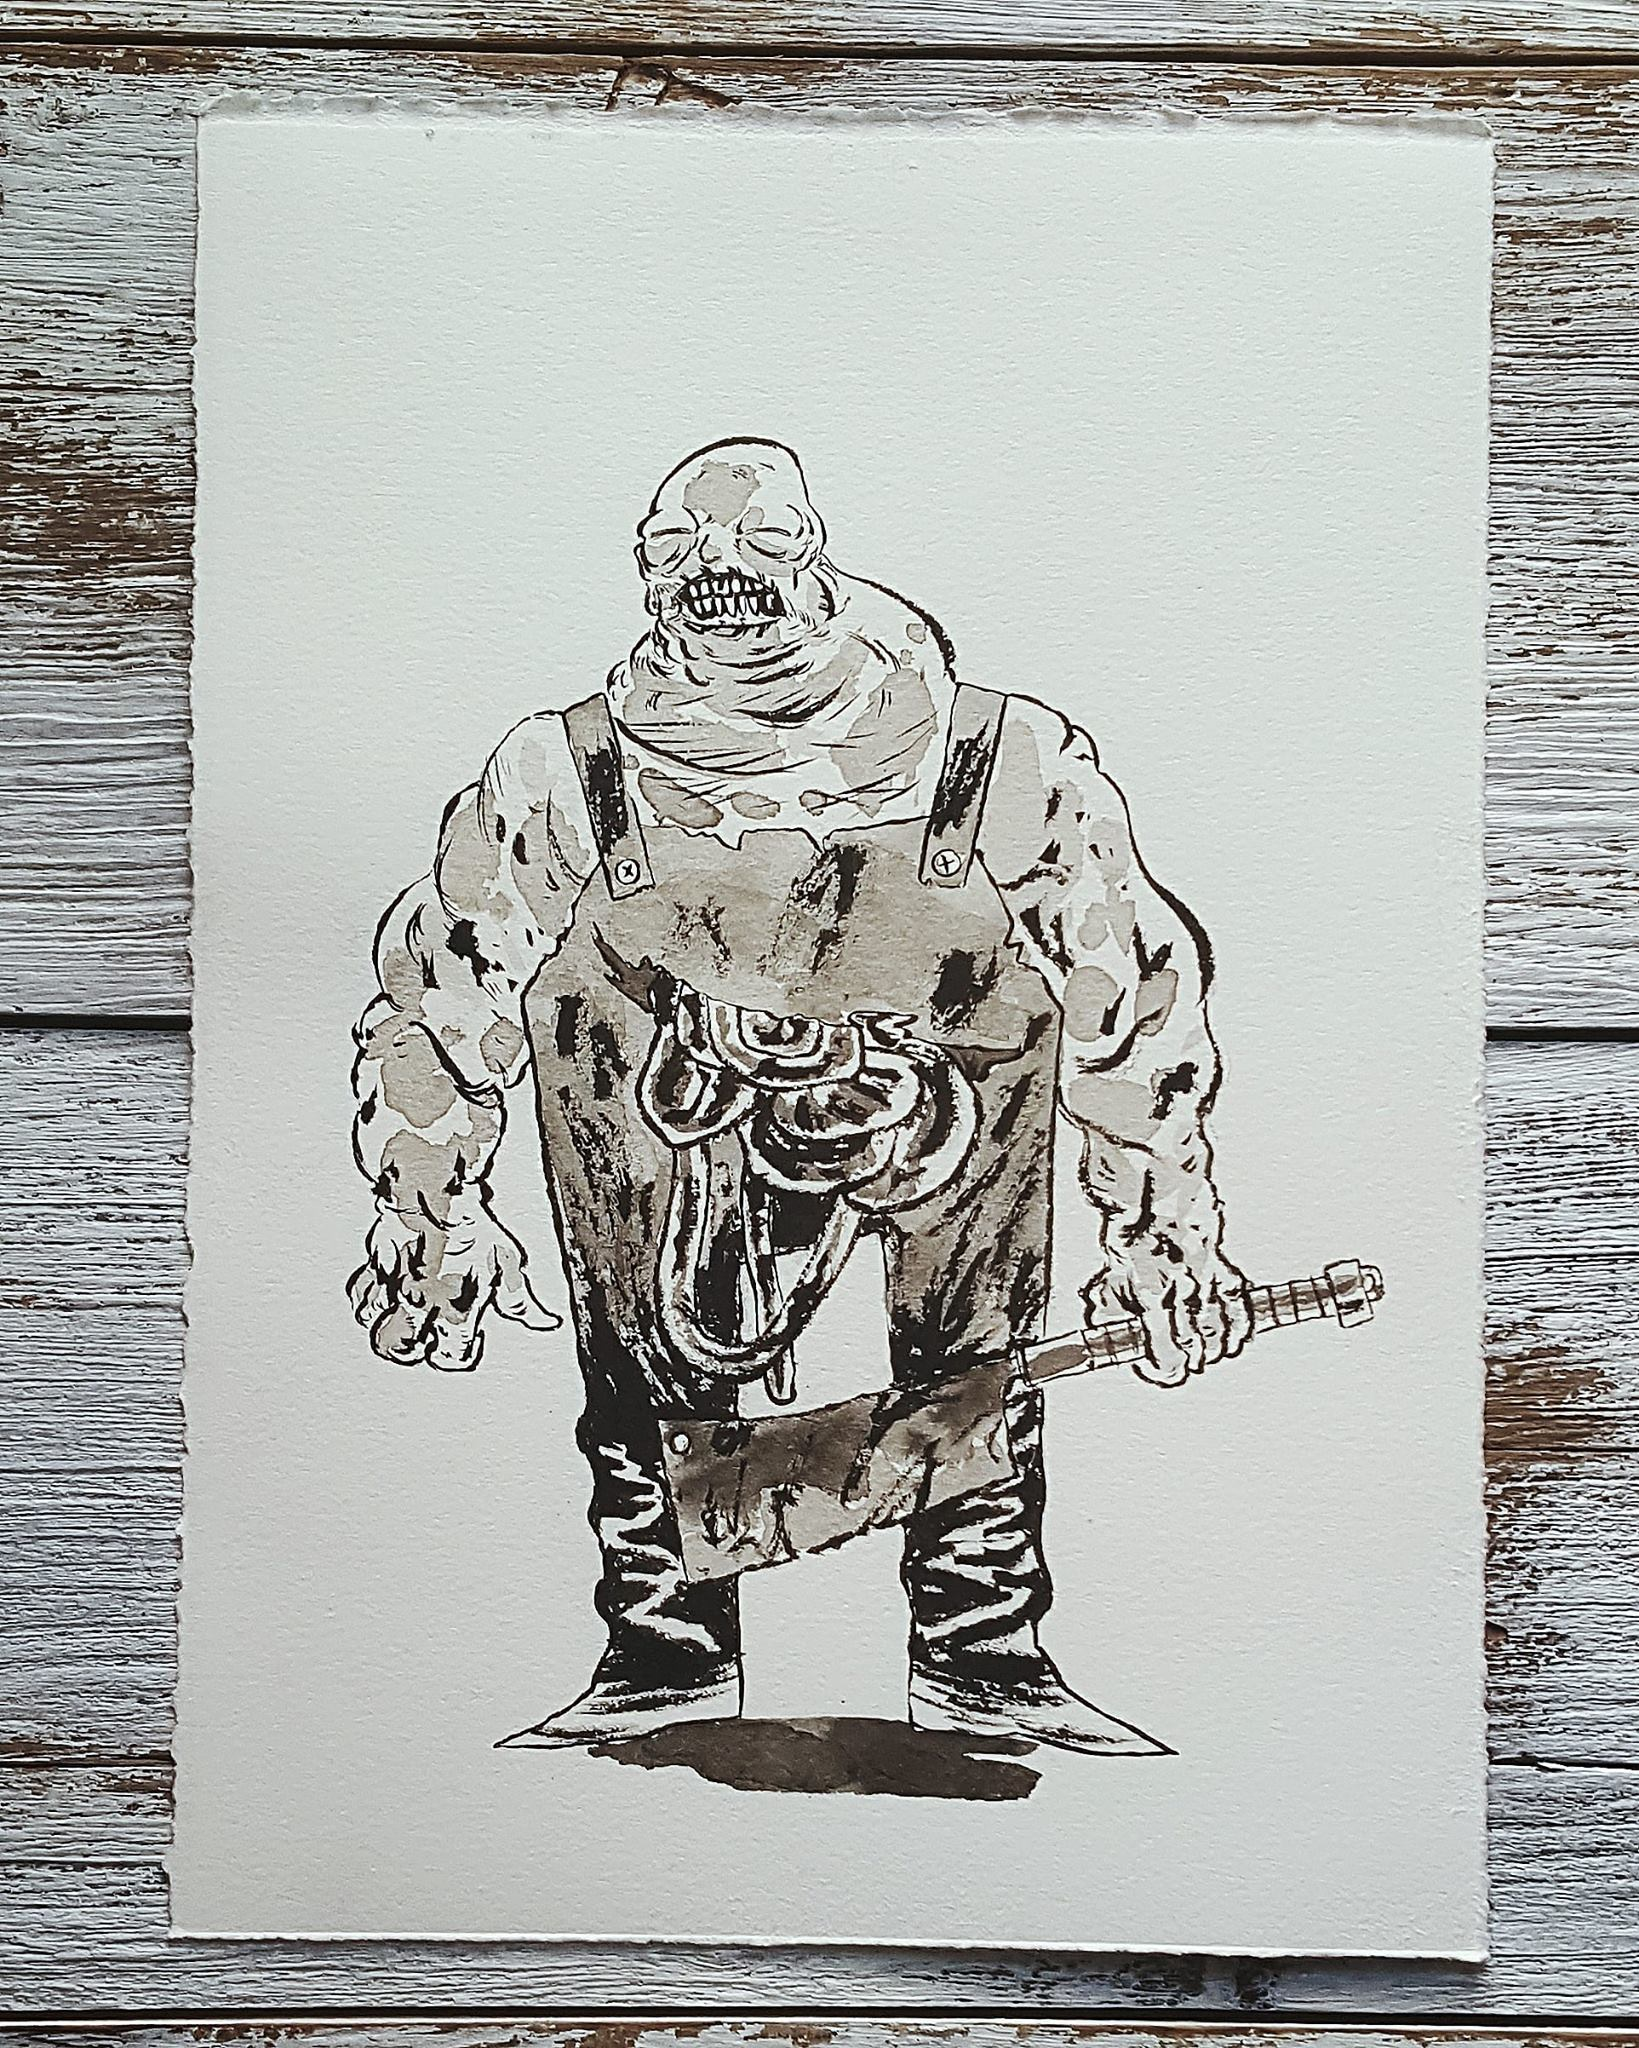 A Knight a Day No. 27, Bloated Butcher - A butcher who was drowned in a bog when he tried to protect villagers from raiders. His wet, bloated spirit wanders the land where his village used to be, ready to protect the innocent from harm.